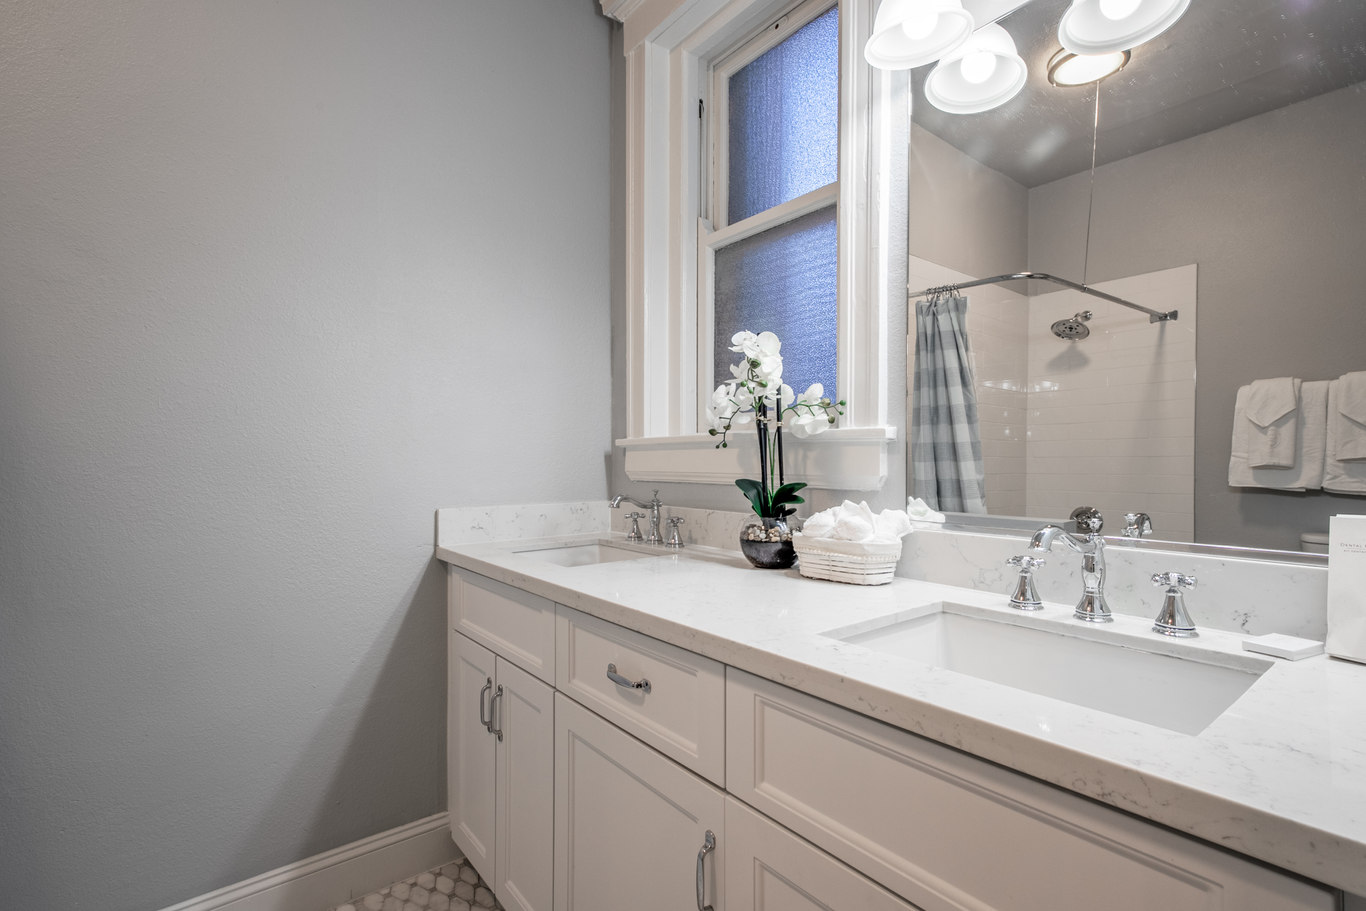 Bathroom at 952 Sutter Apartments